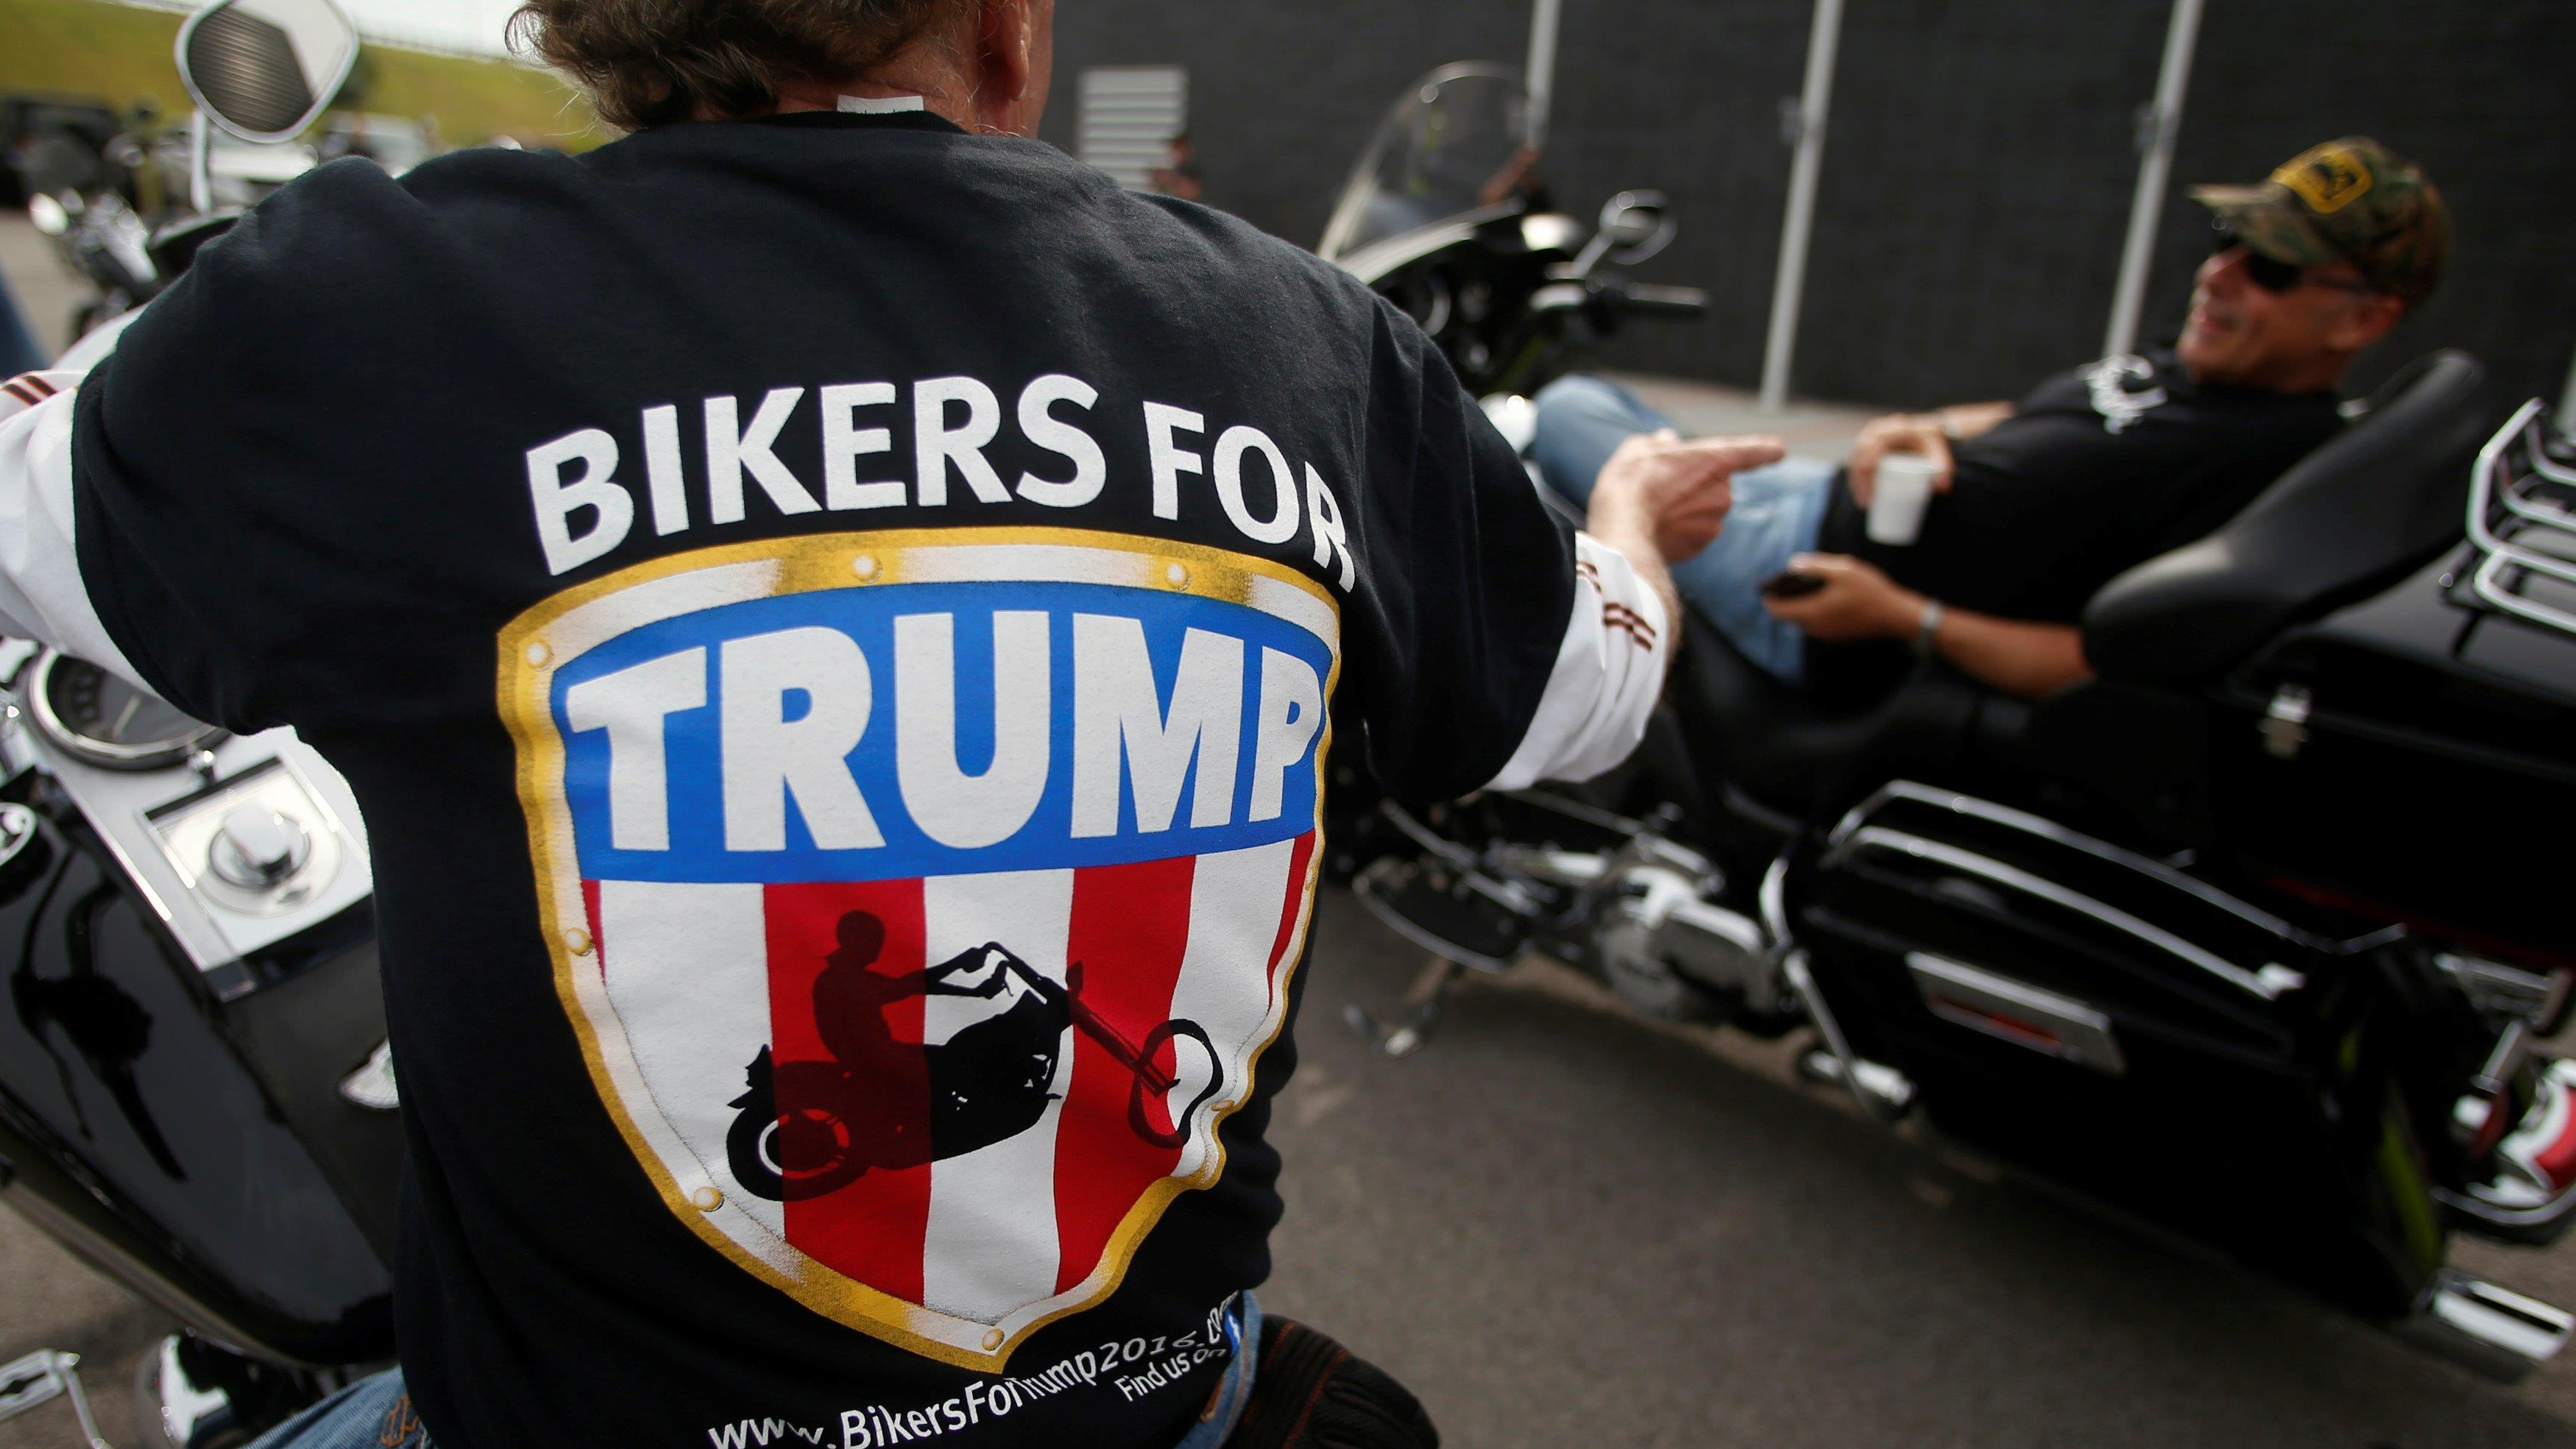 Chris Cox of Bikers for Trump on how the group will help if inauguration protests get out of hand.